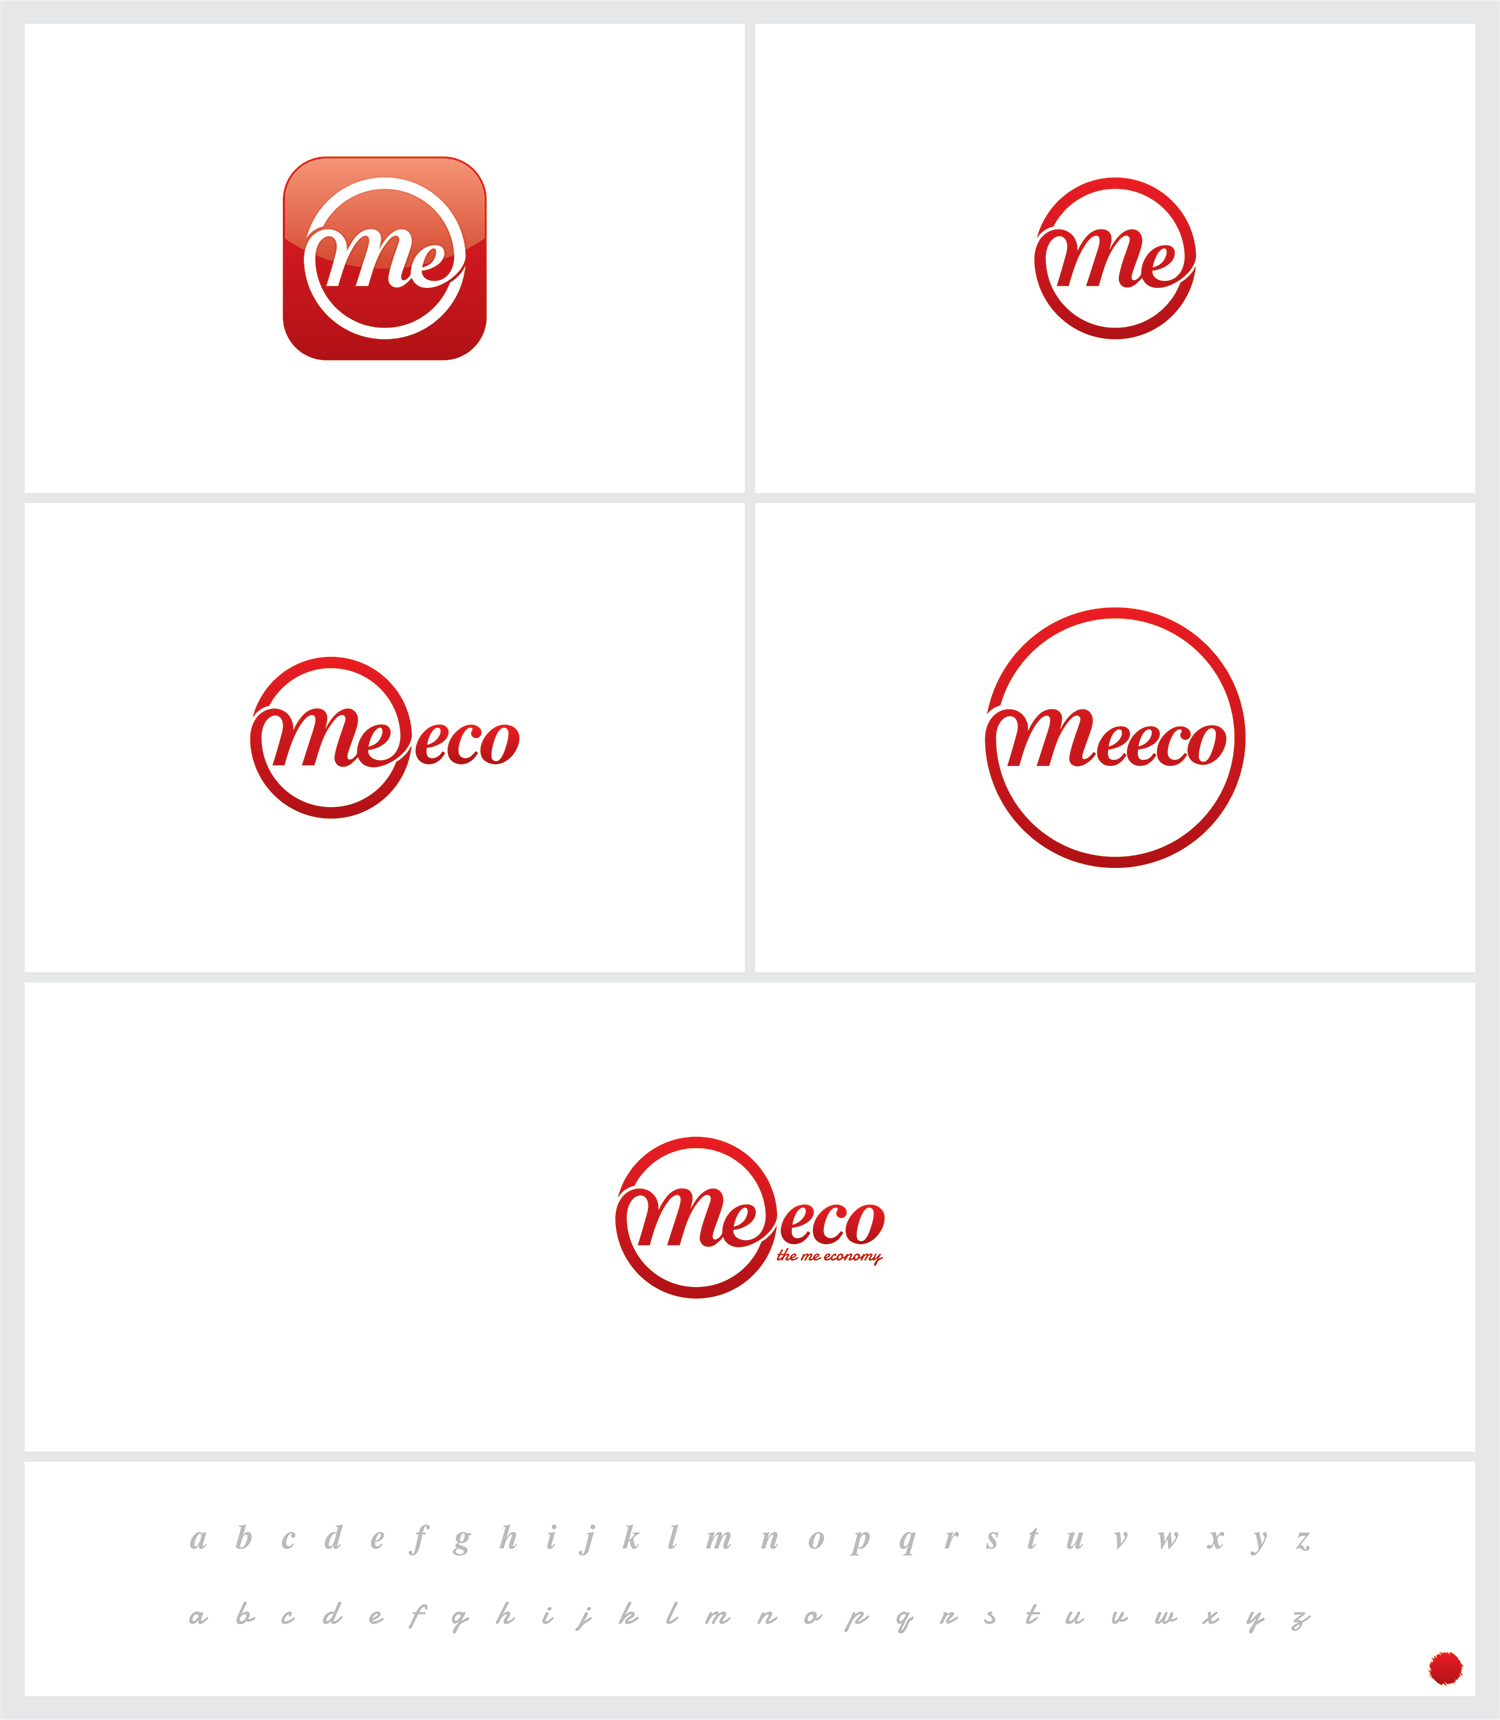 Help Meeco with a new logo